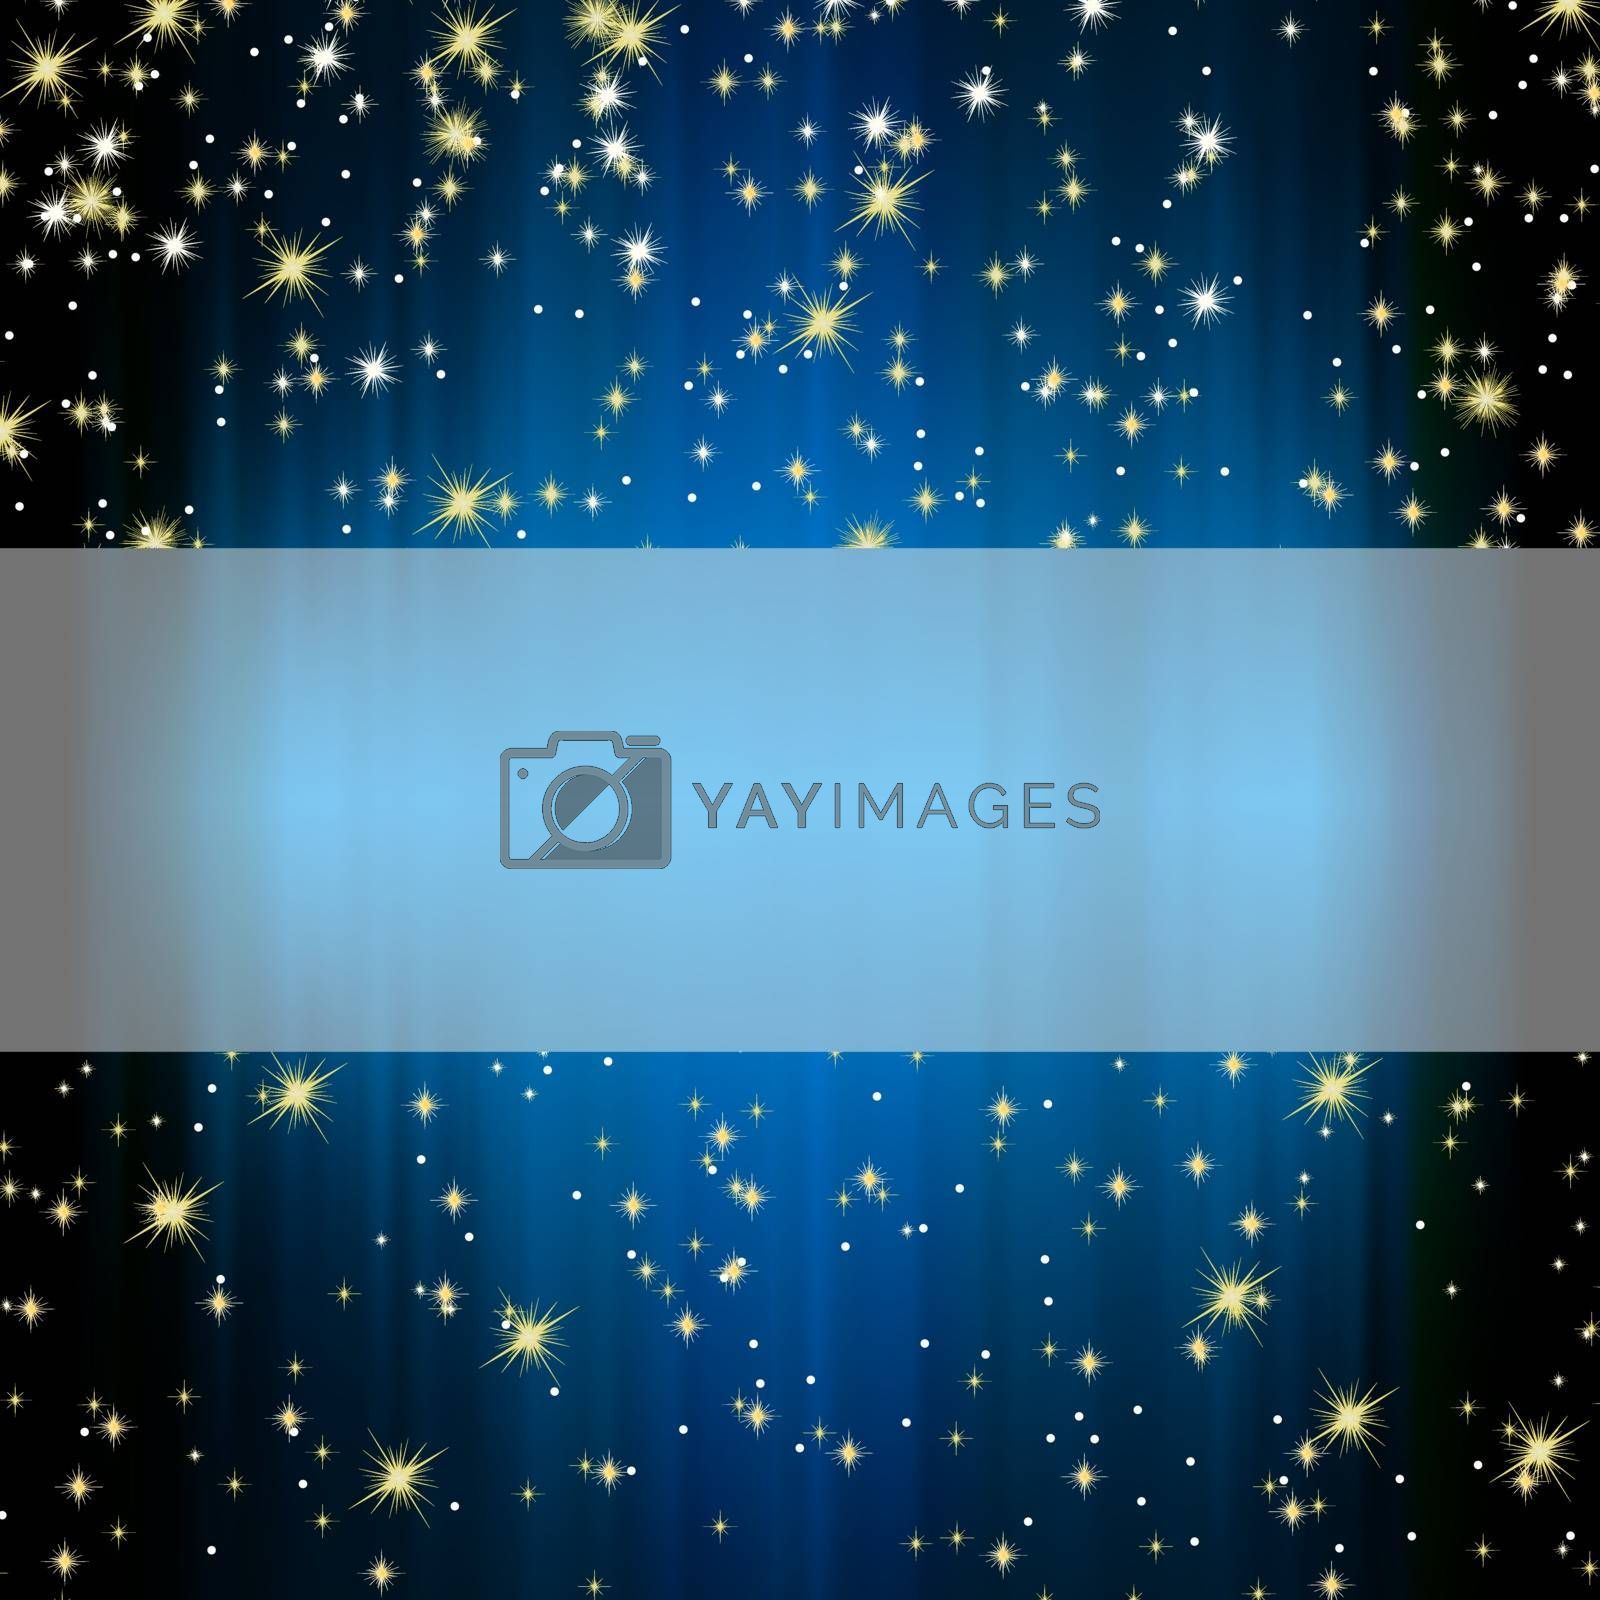 Royalty free image of Christmas decoration background. EPS 8 by Petrov_Vladimir